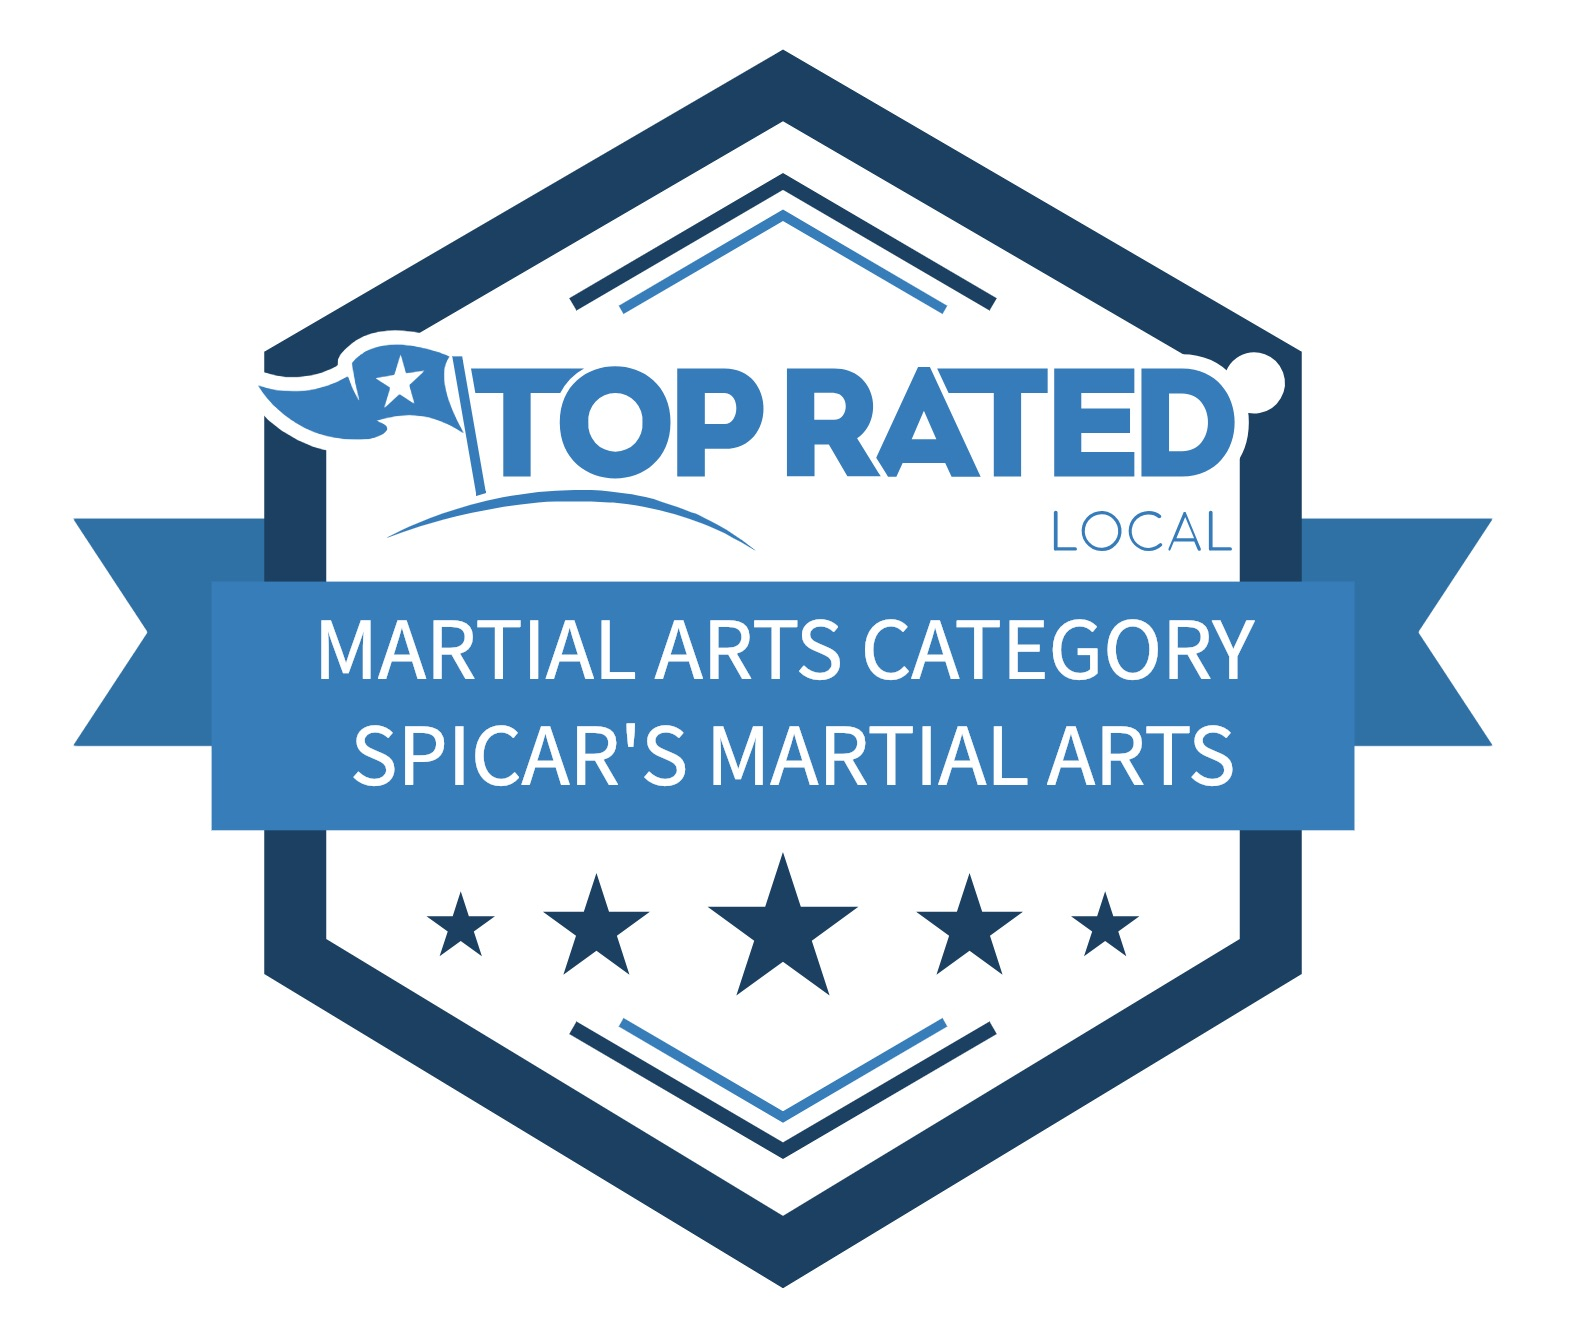 top-rated-local-southlake-texas-spicars-martial-arts.jpg